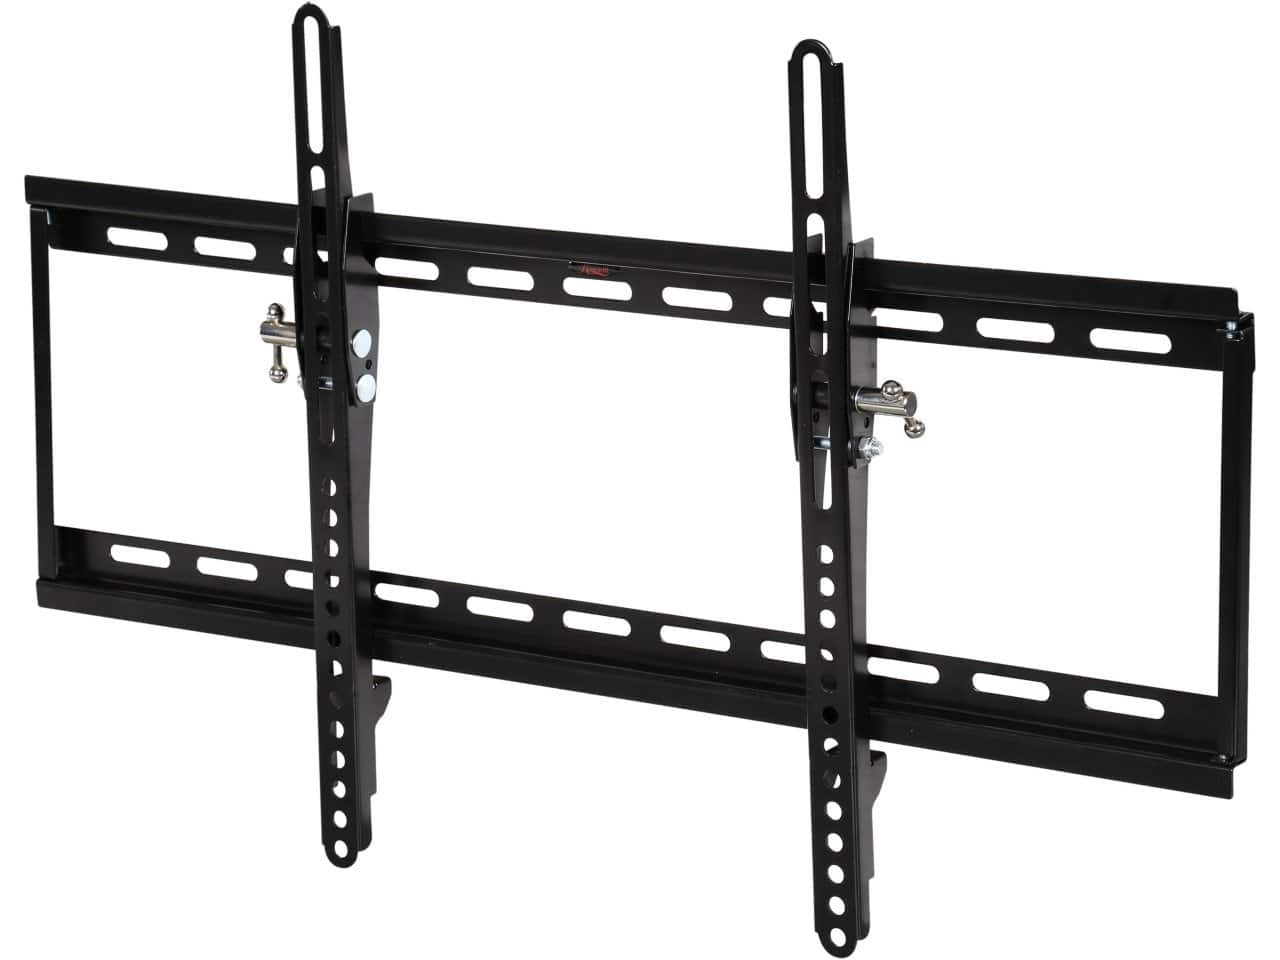 "Rosewill Tilt Wall Mount for 32""-70"" HDTVs (RHTB-14005) for $14.99 AC (or less) & More + Free Shipping @ Newegg.com"